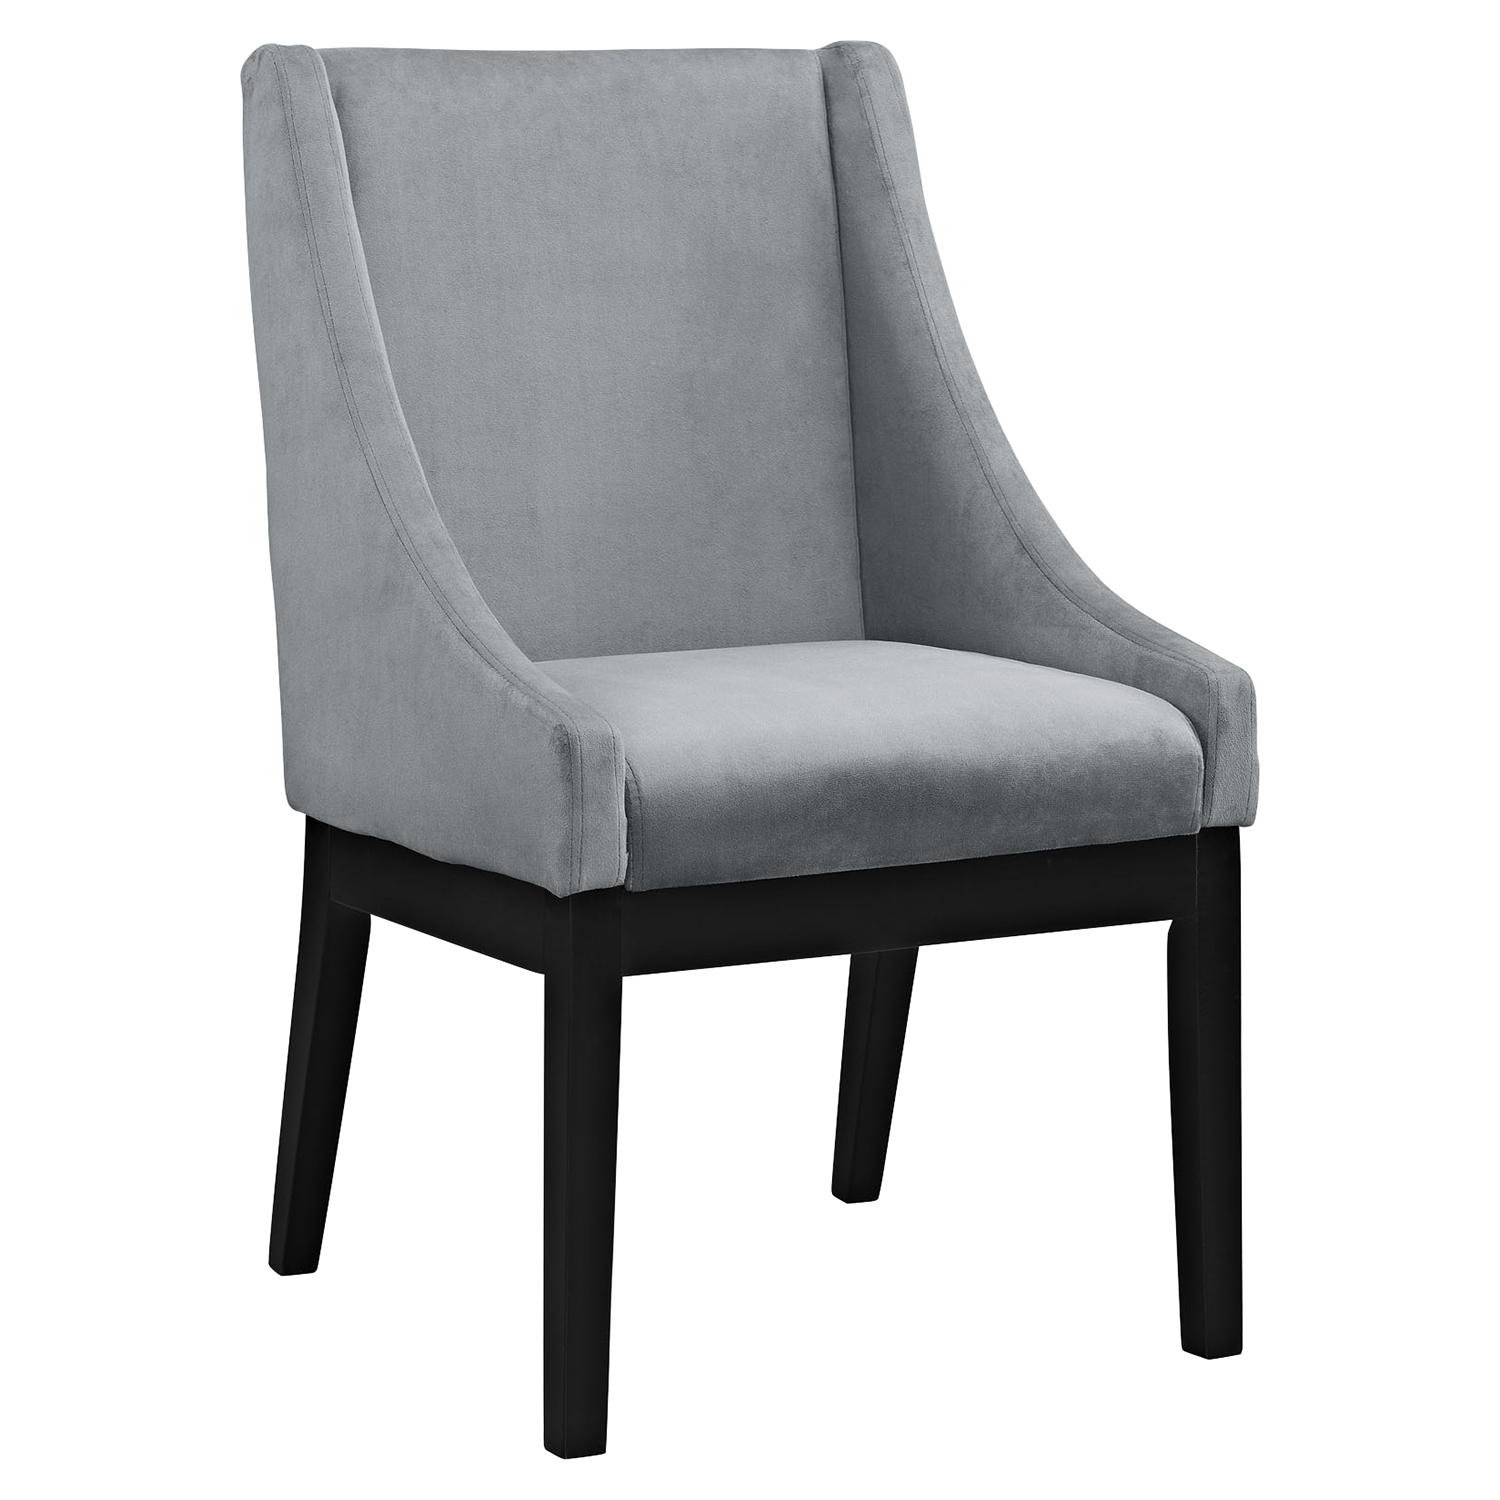 Tide Upholstery Side Chair - Wood Legs, Gray